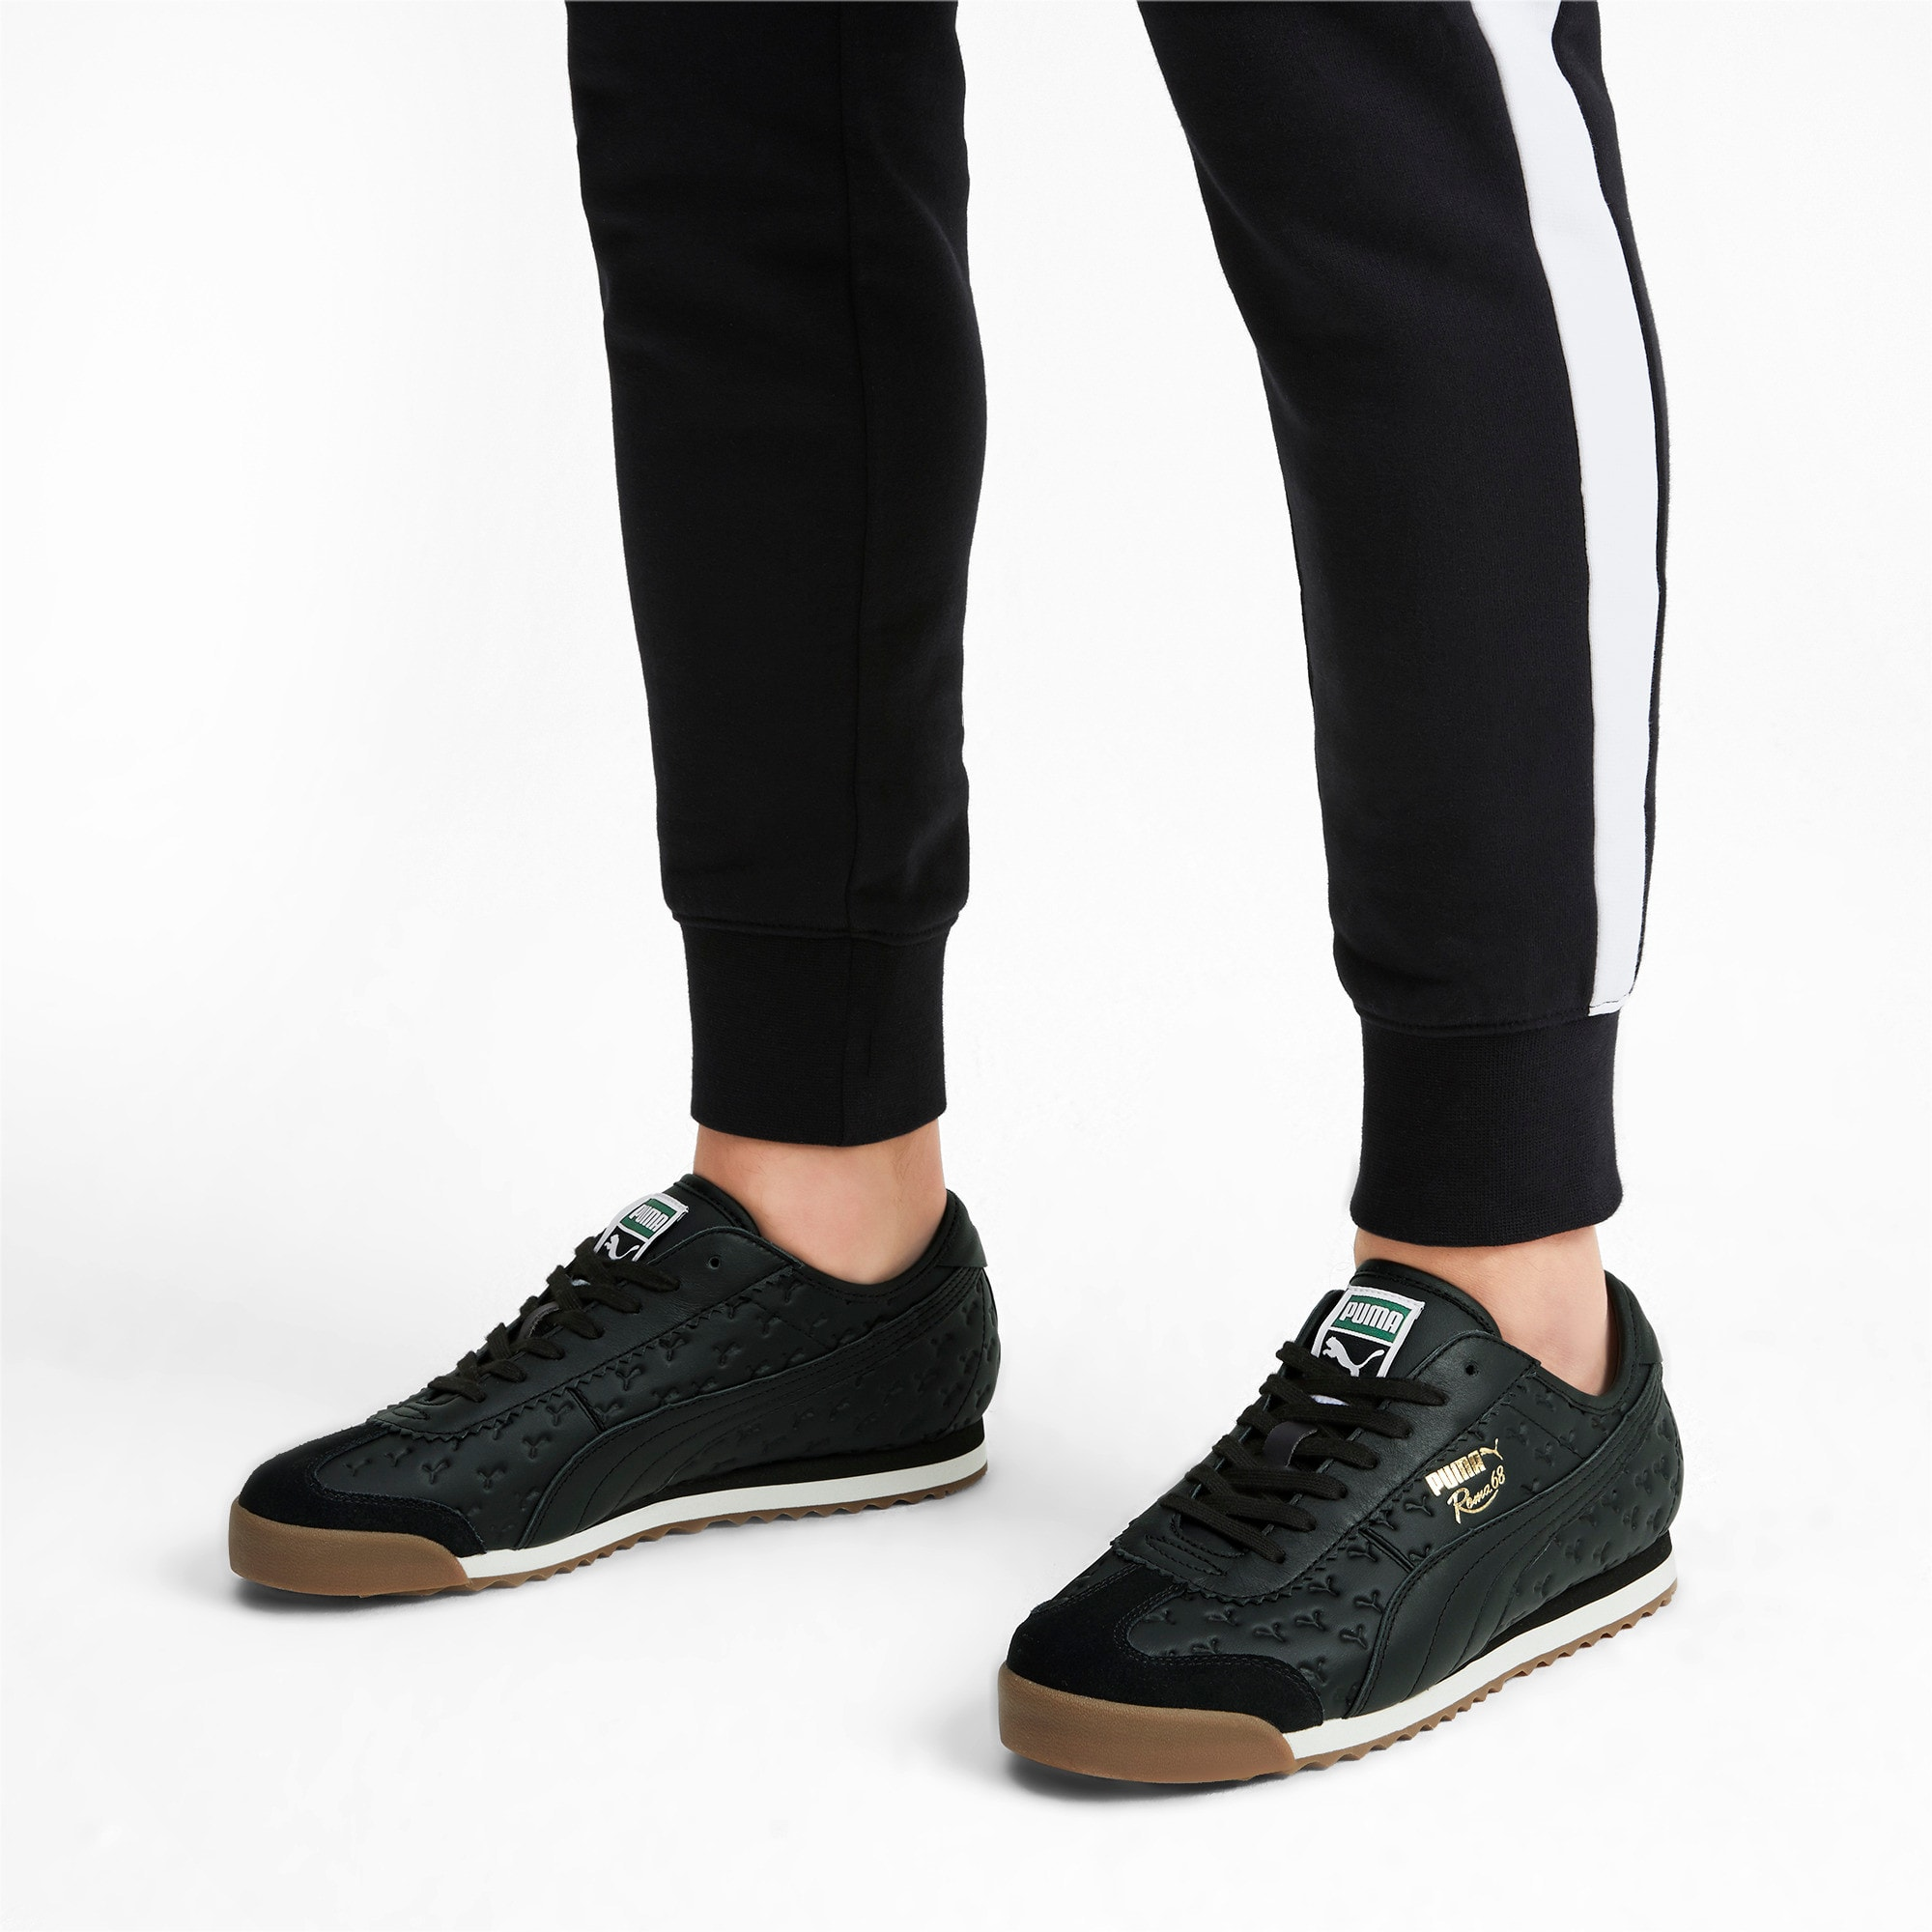 Thumbnail 2 of Roma '68 Gum Sneakers, Puma Black-Puma Black, medium